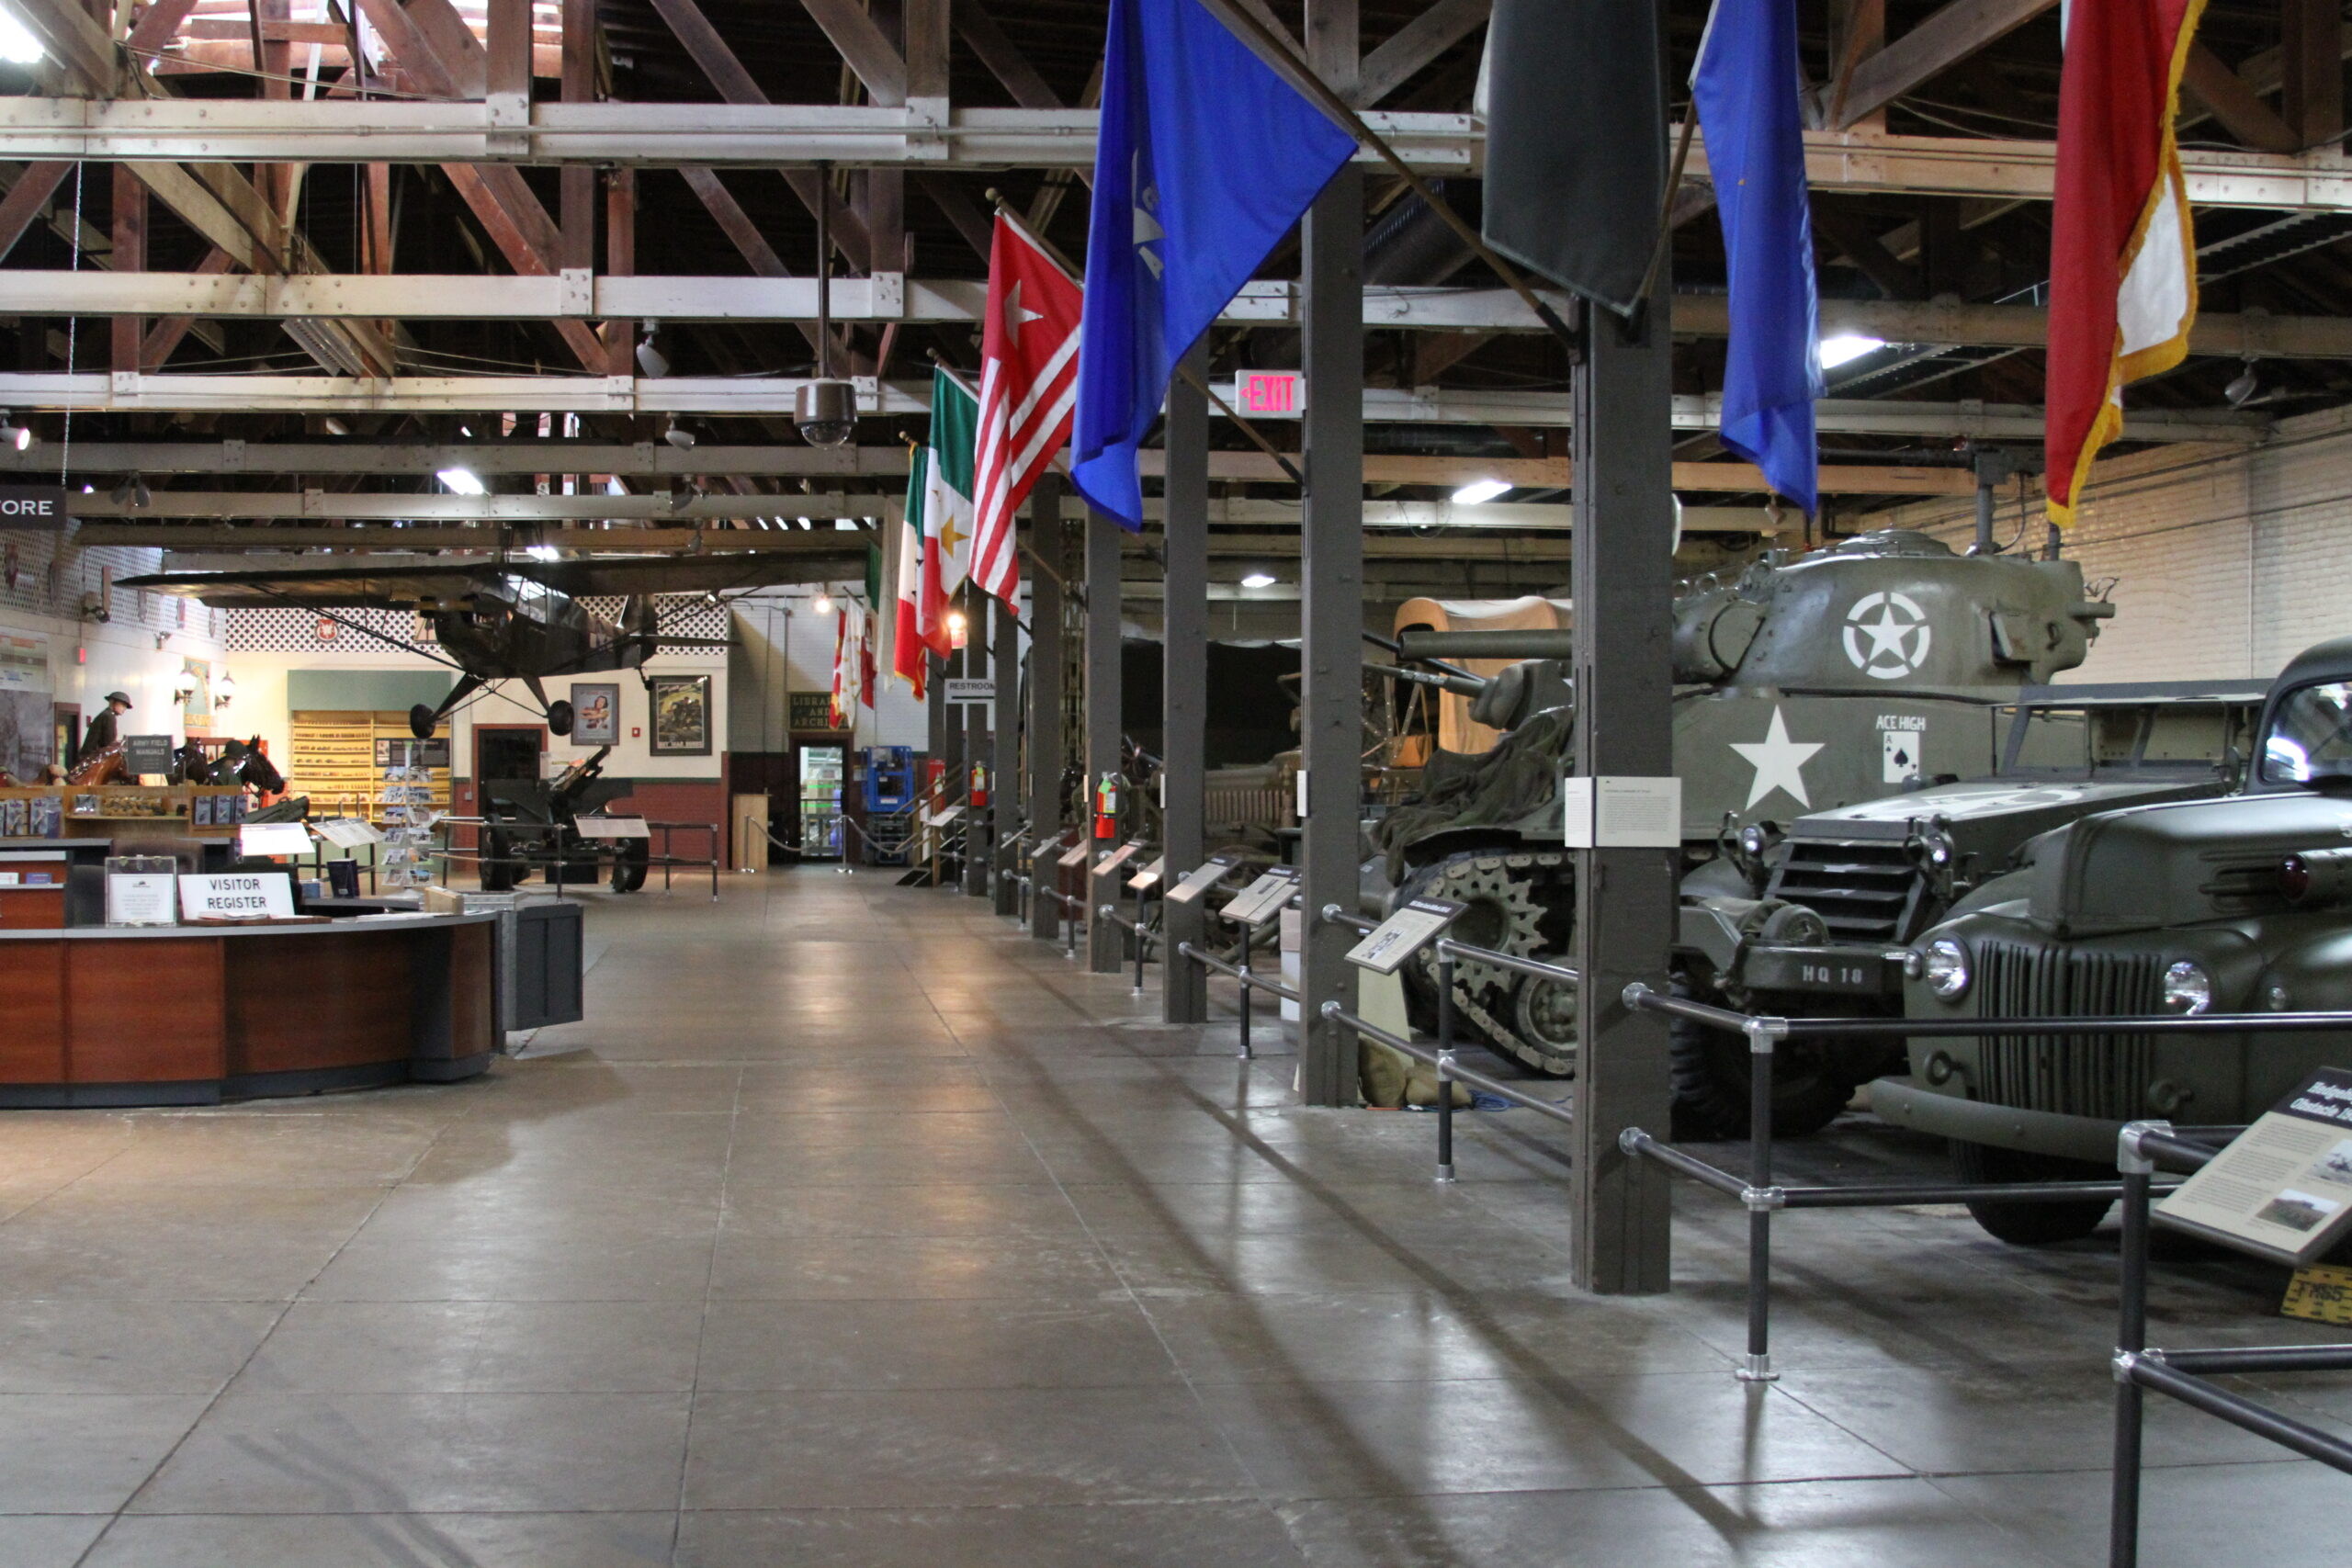 Texas Military Forces Museum Is the Best Kept Secret In Austin